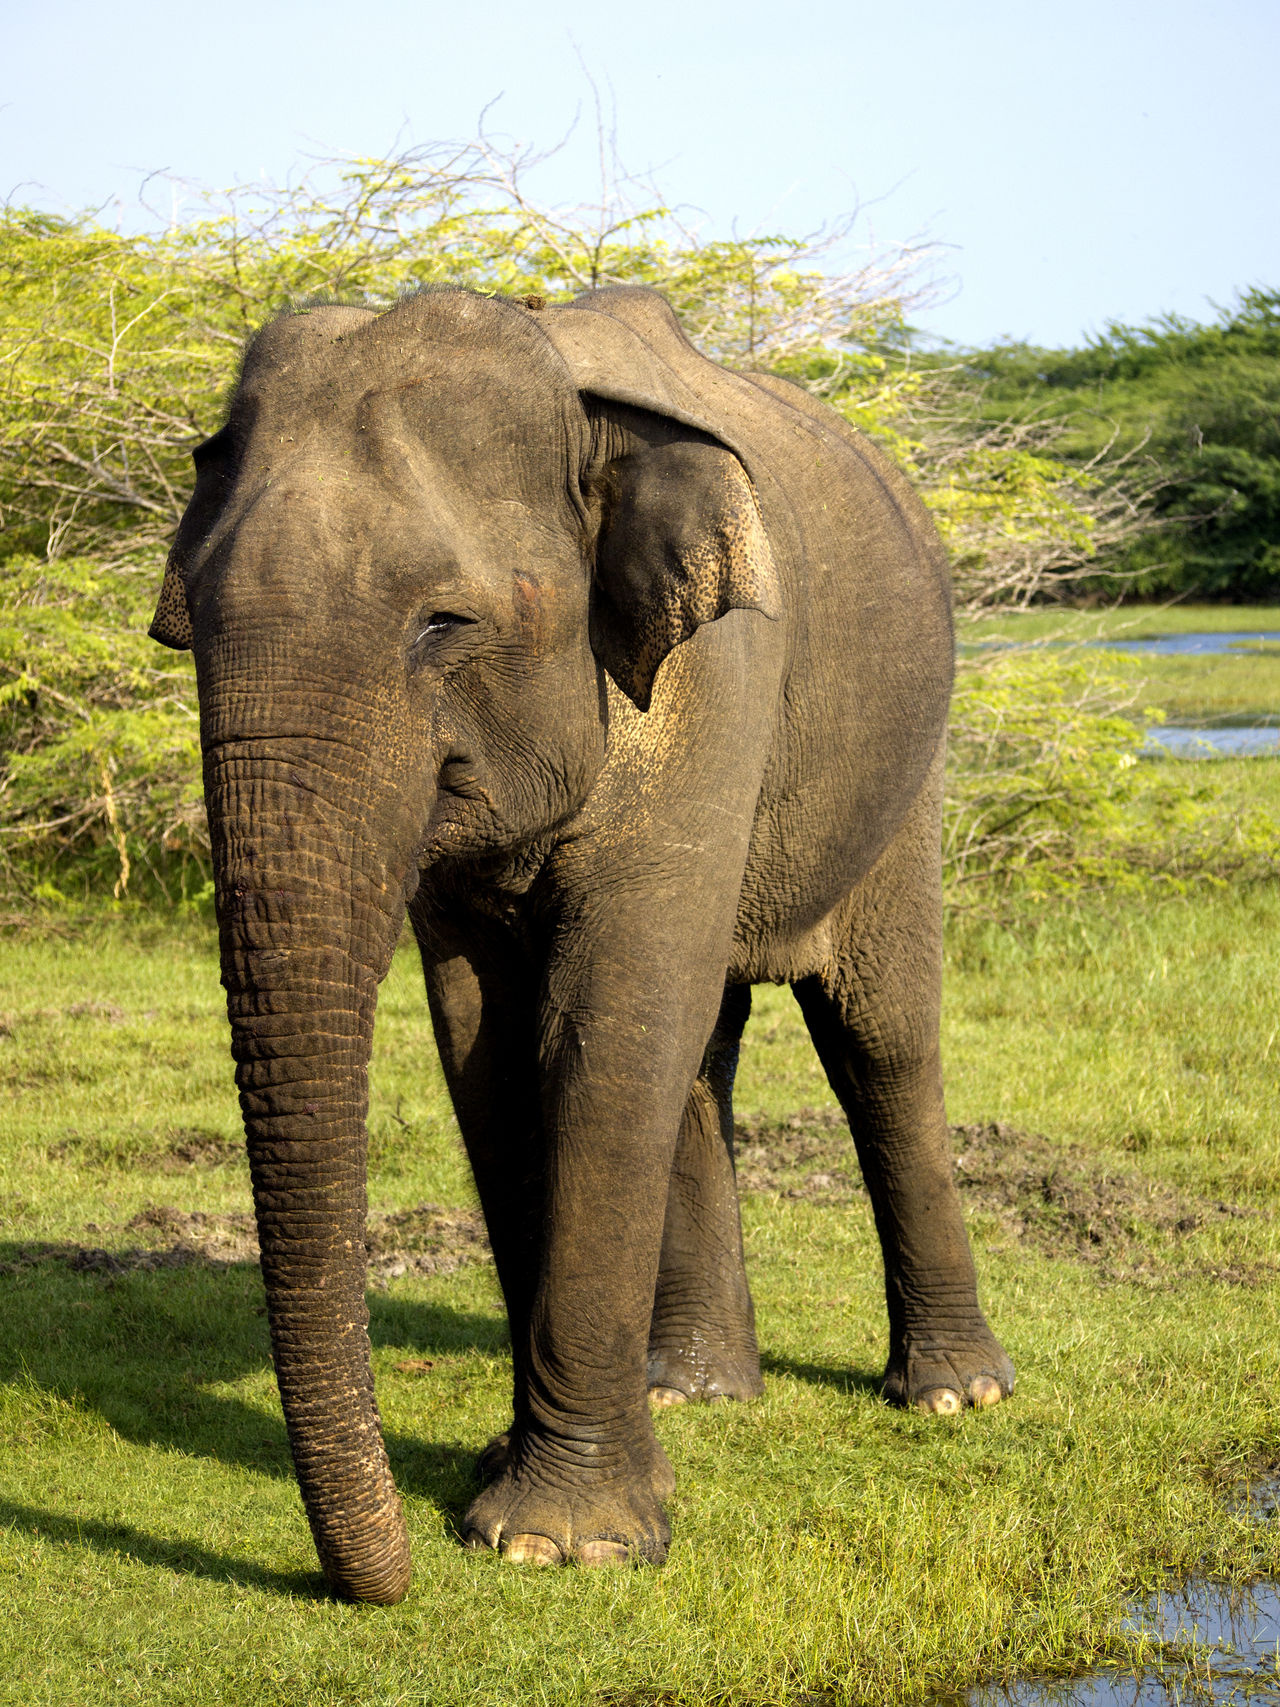 African Elephant Animal Animal Themes Animal Trunk Animal Wildlife Animals In The Wild Beauty In Nature Day Elephant Front View Full Length Grass Indian Elephant Mammal Nature No People One Animal Outdoors Sri Lanka Standing Tusk